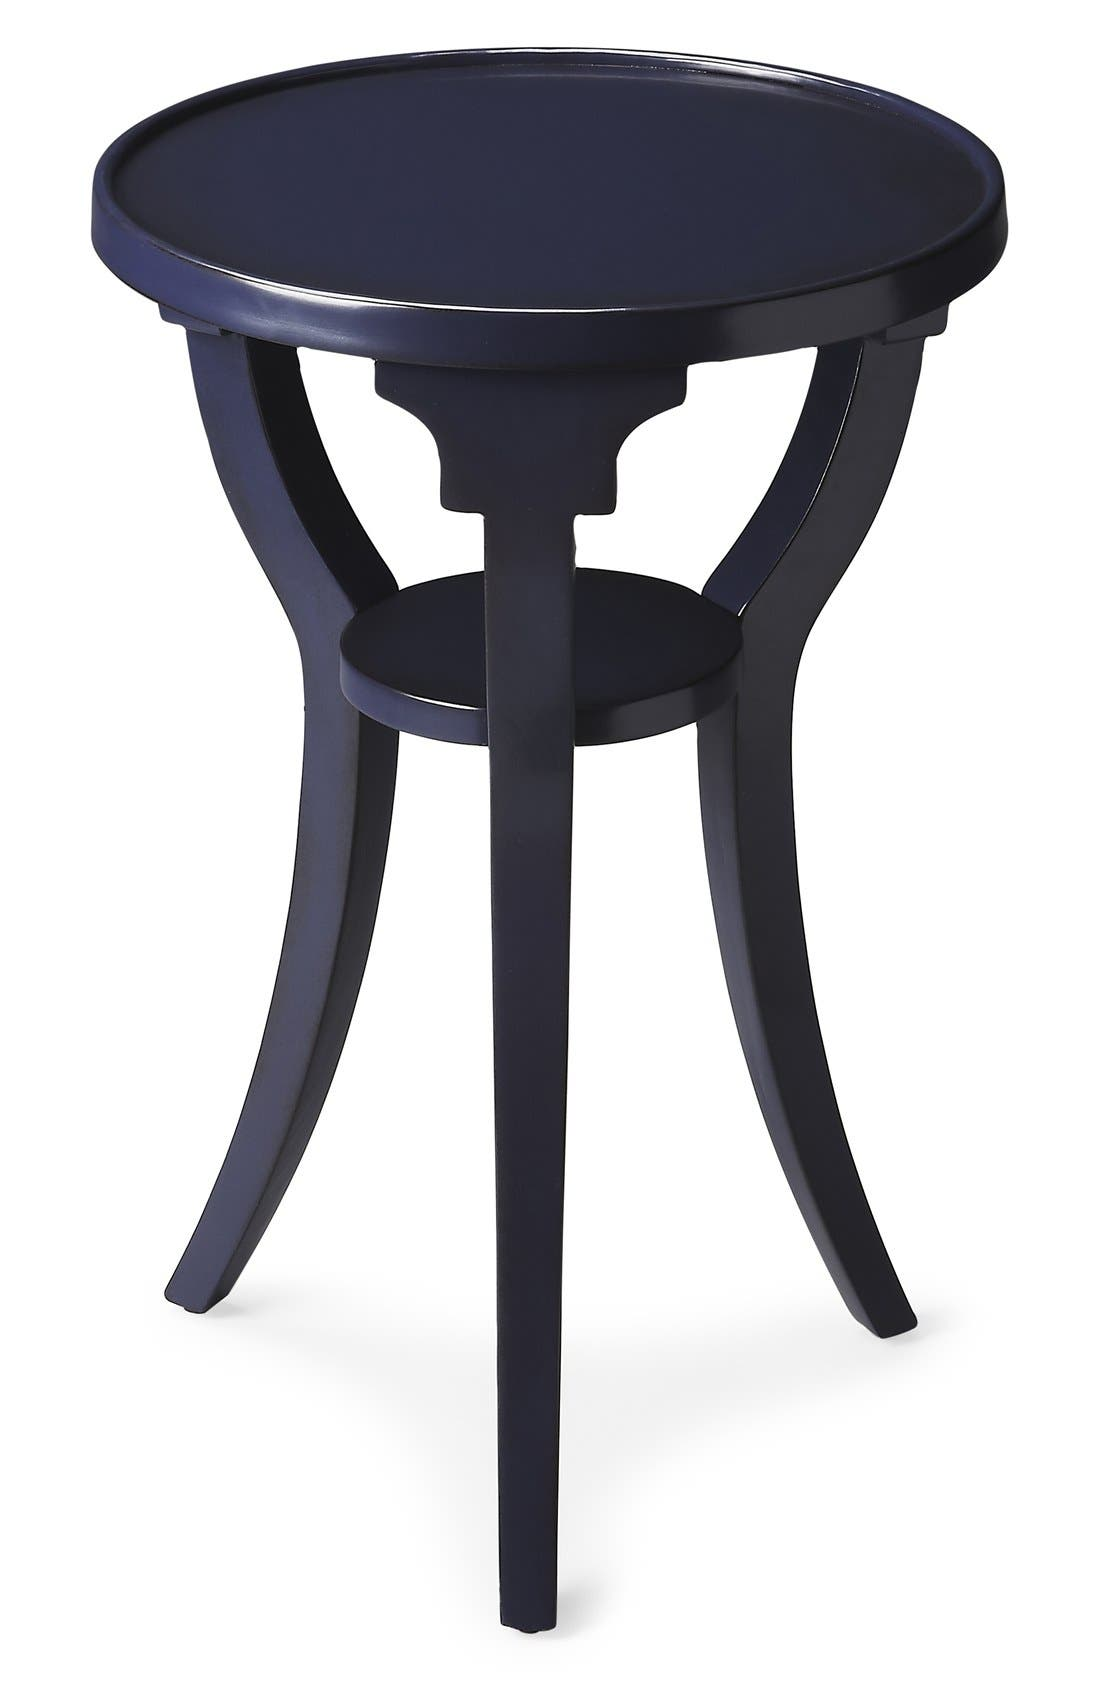 Main Image - Butler Round Wood Accent Table